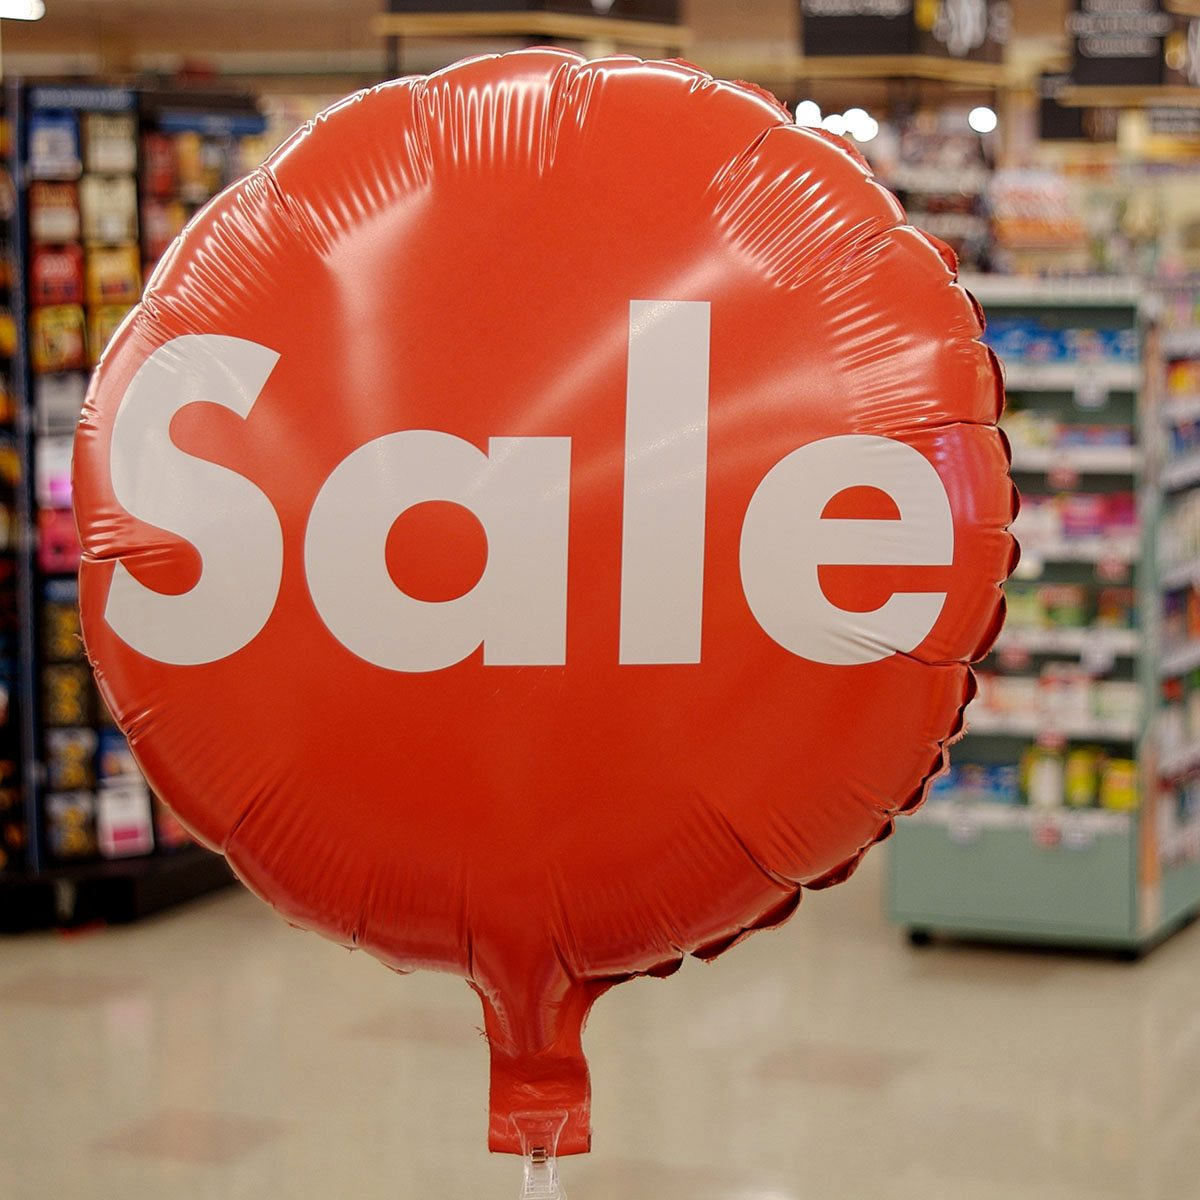 Sale balloon in grocery store